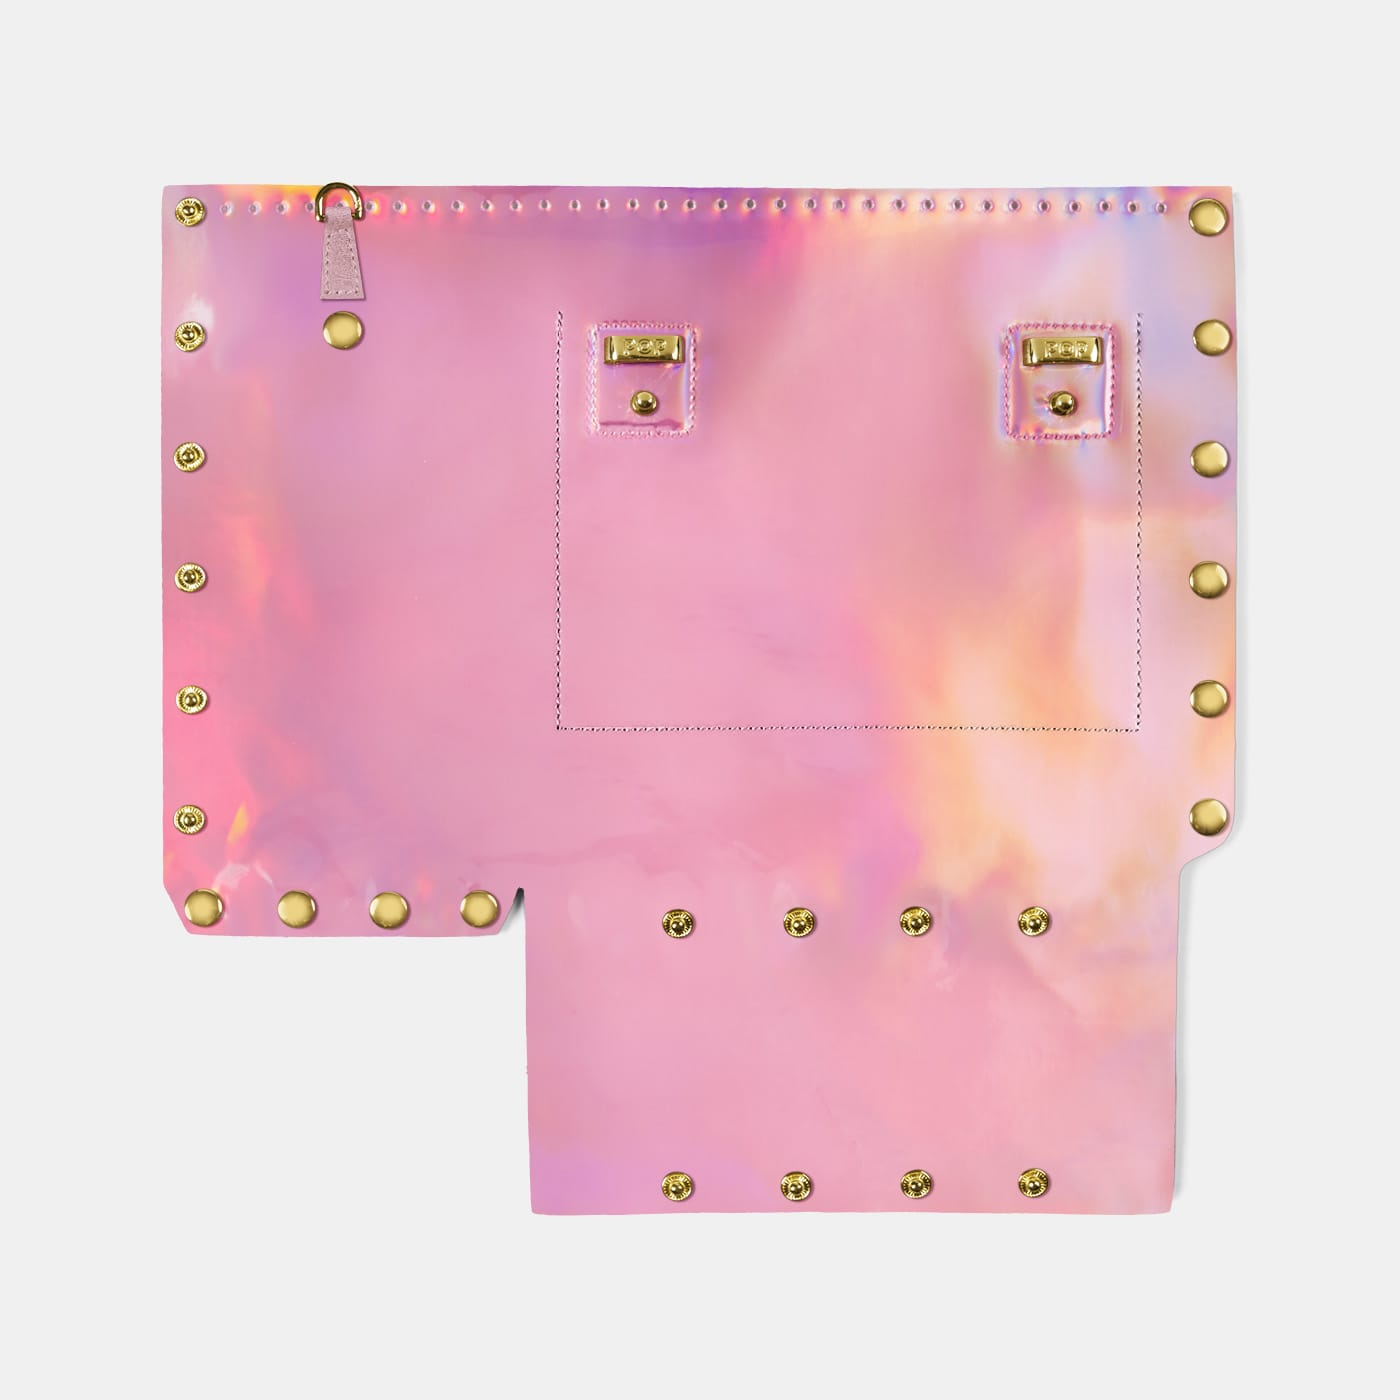 Pop Aurora Back Panel - Pink Iridescent - Small